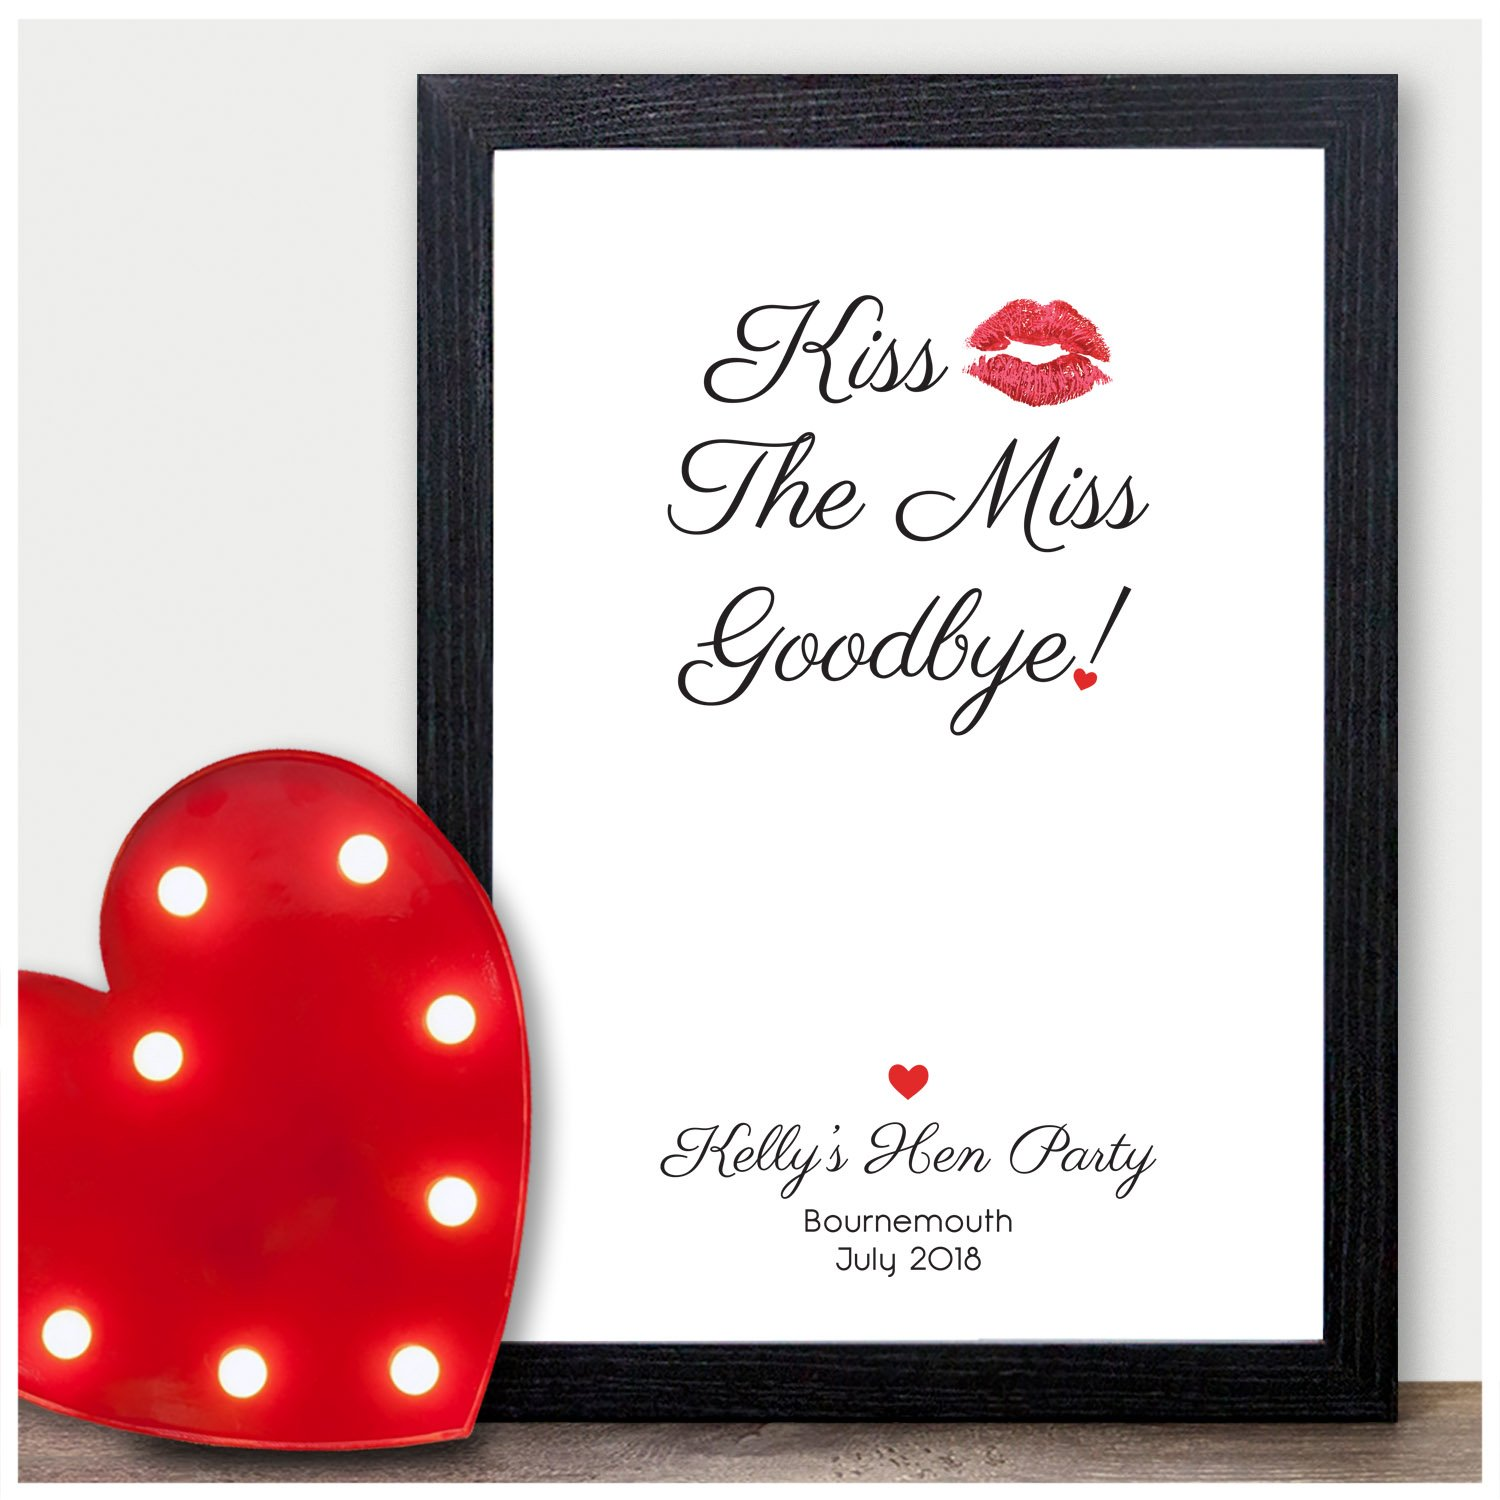 Hen party Bride to be gift accessories keepsake KISS THE MISS GOODBYE A4 print